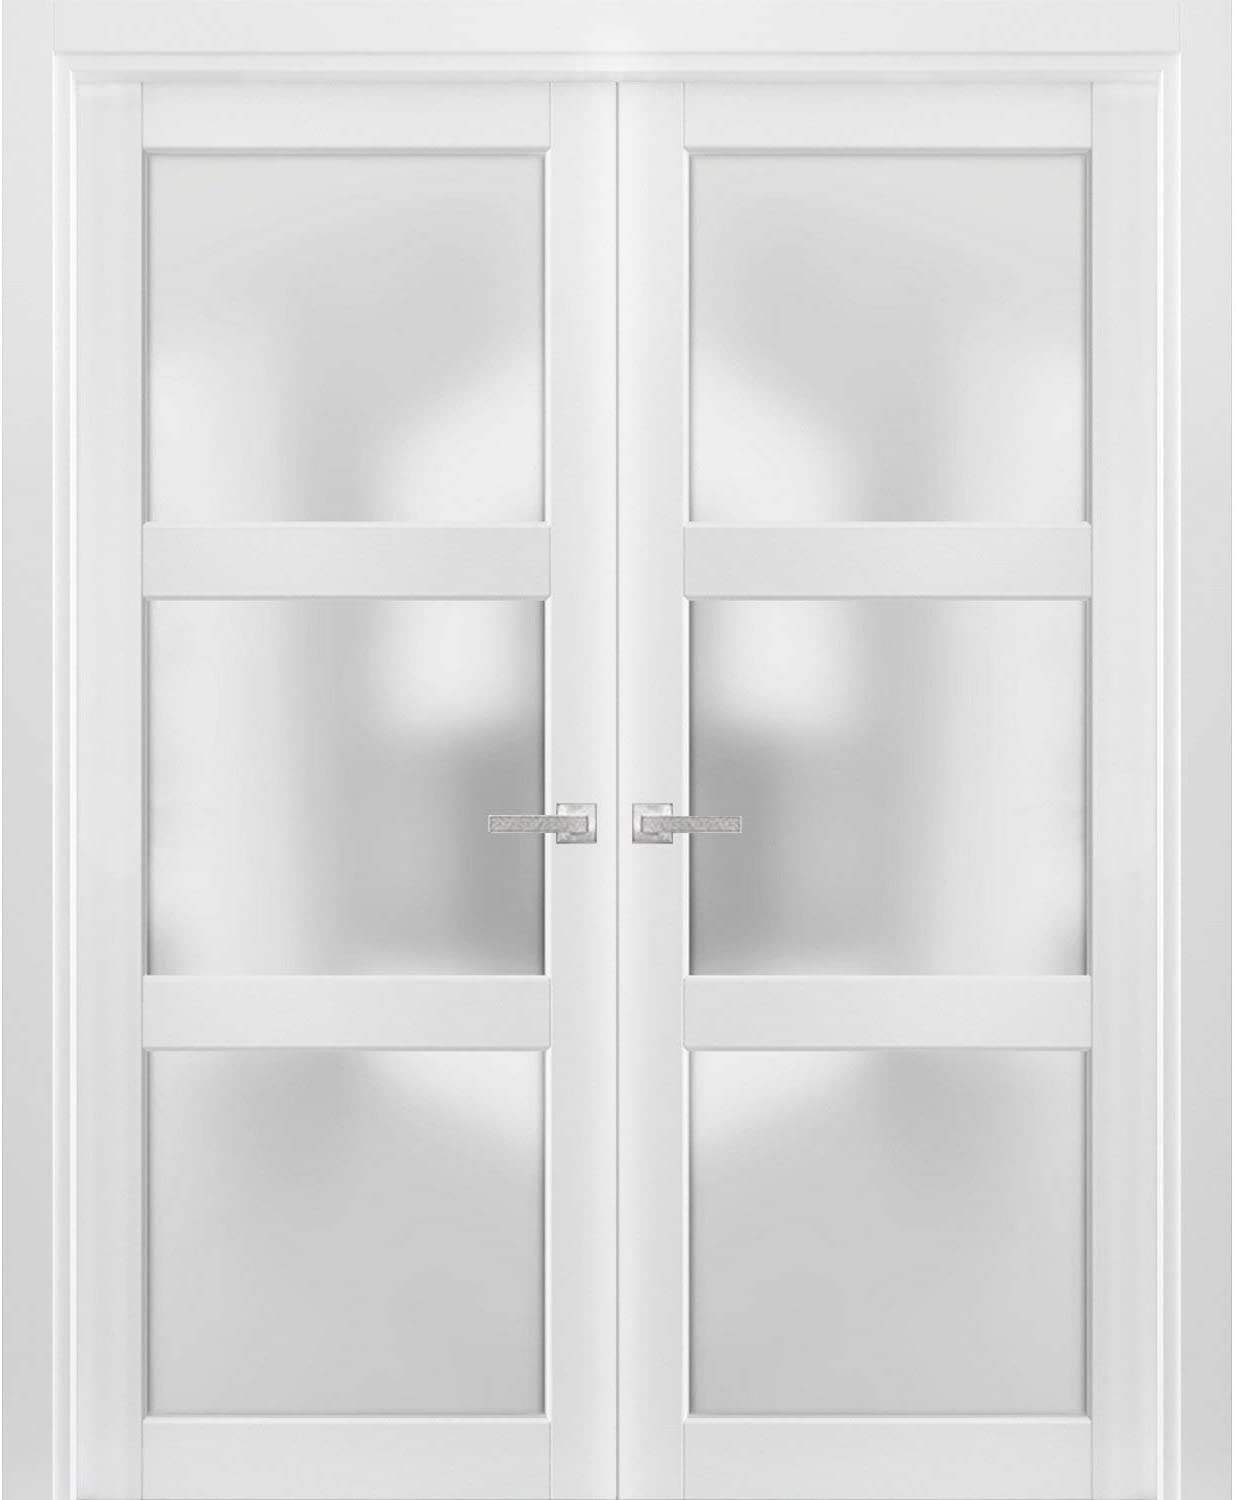 Swing Door Solid Wood Interior Formelle Legnoform Srl Wood Doors Interior Door Design Wood Wooden Main Door Design